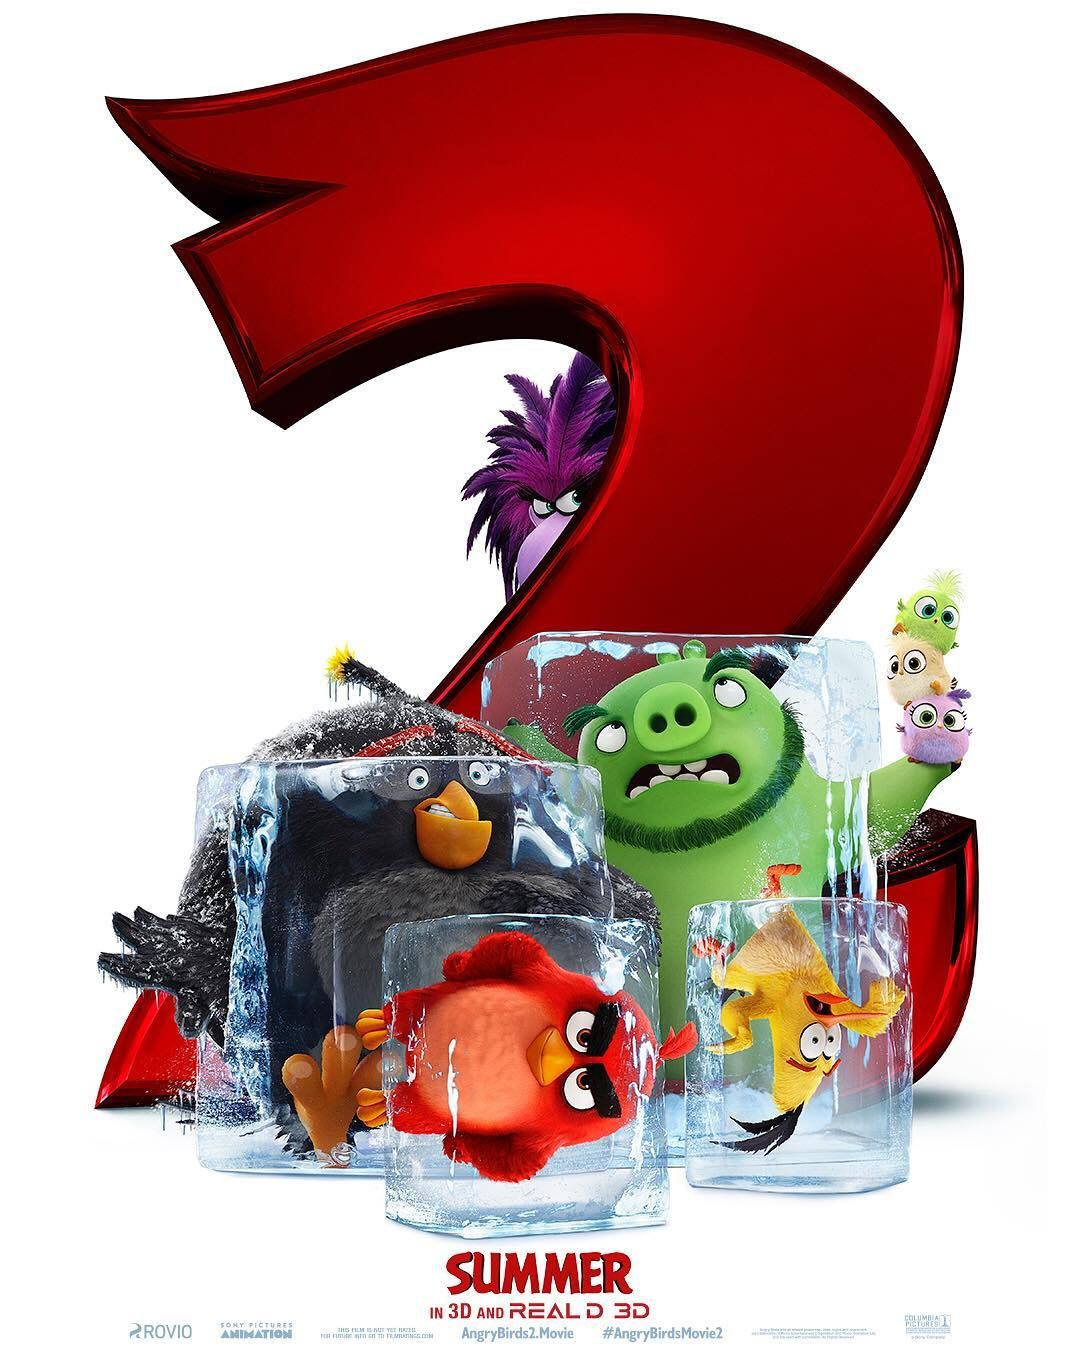 Birds Of A Feather Chill Together The Angrybirdsmovie2